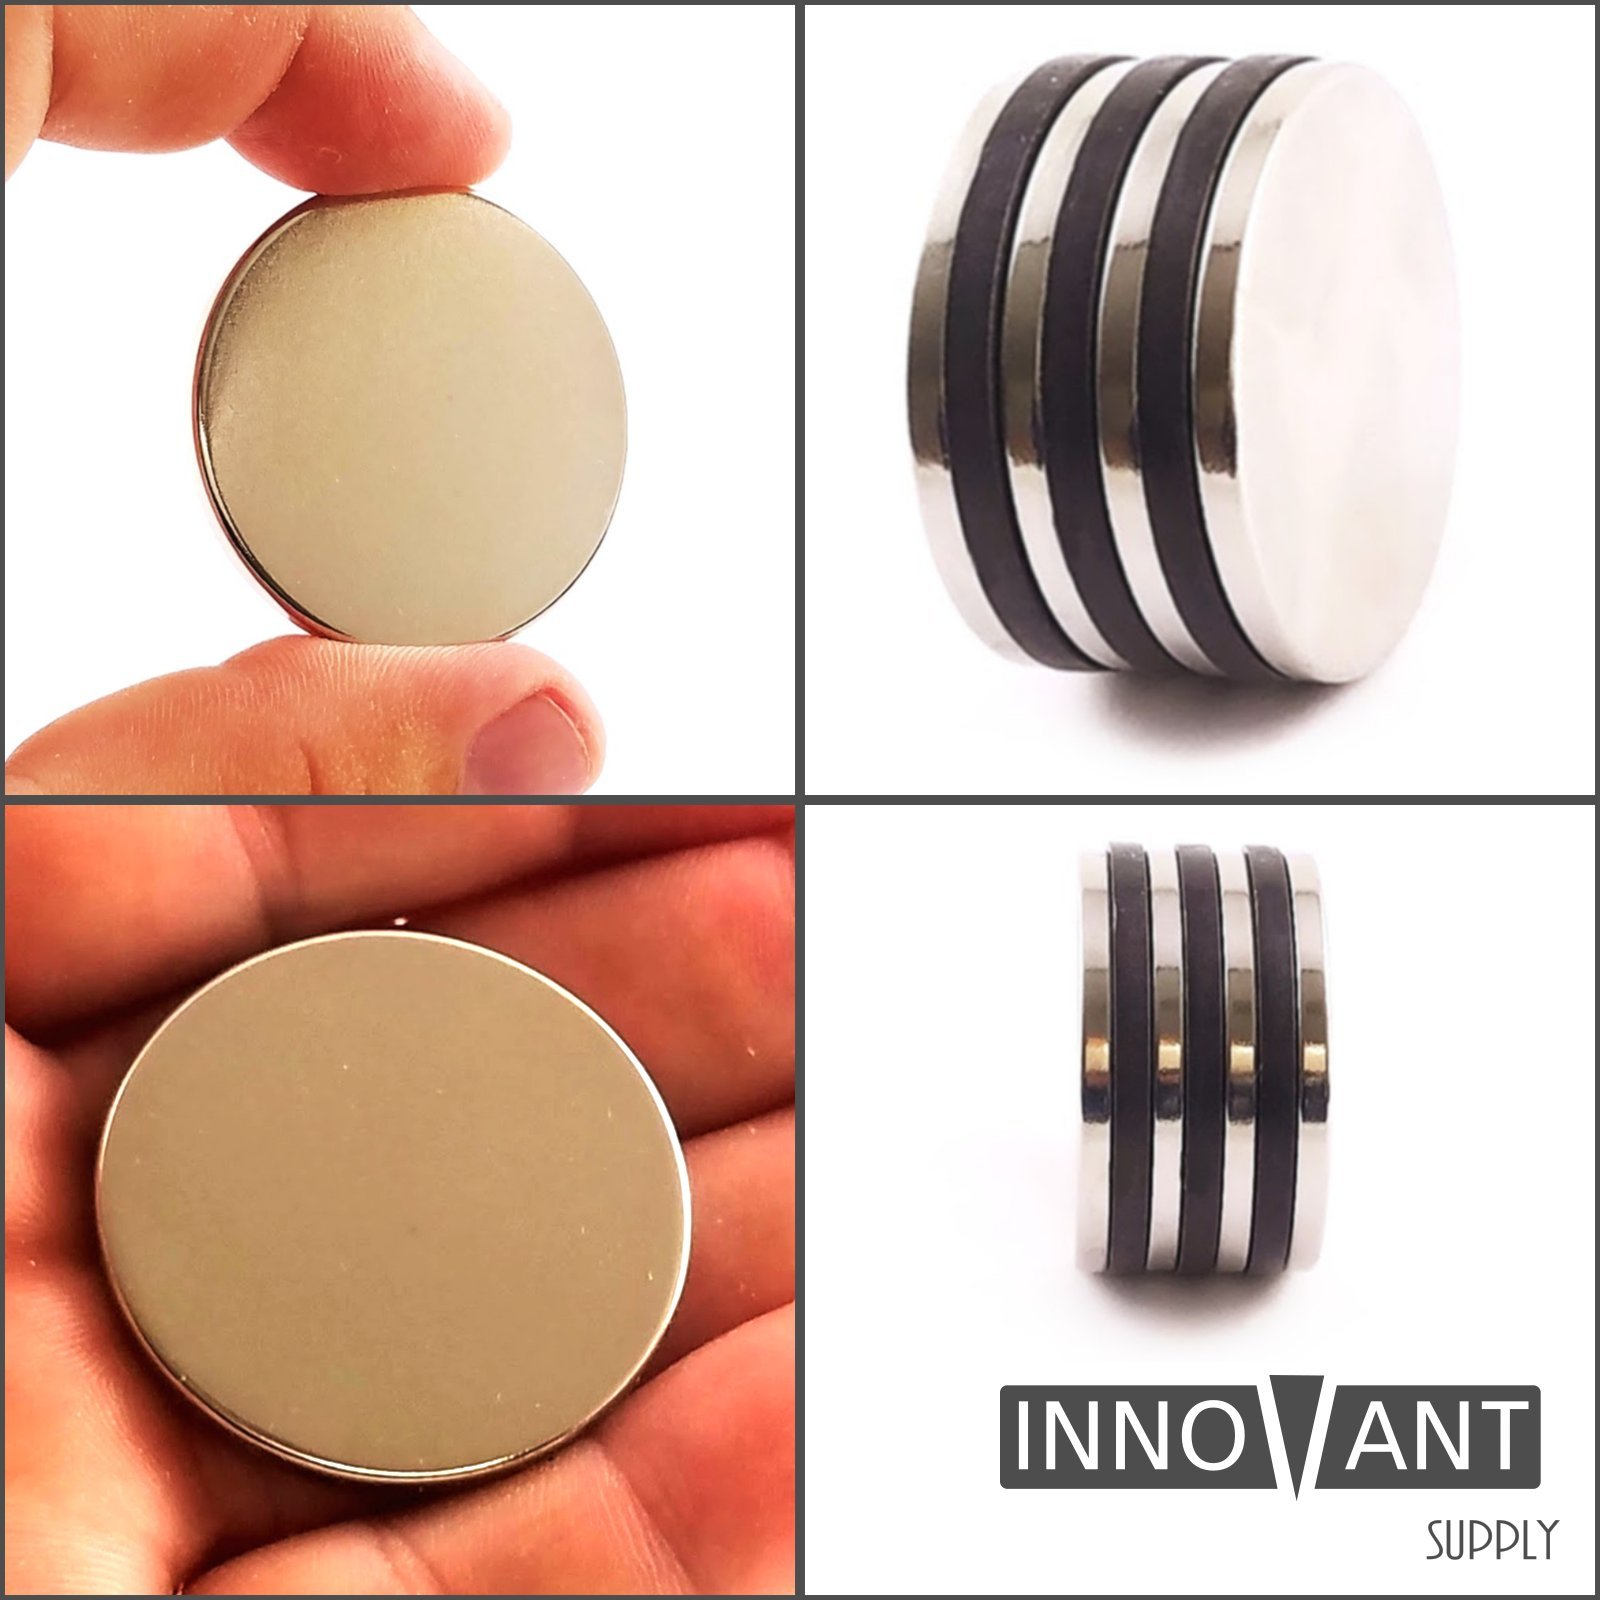 INNOVANT 4 Pack Neodymium Disc Magnets 1 1/2'' d x 1/8'' h N45 Grade Strong Permanent Rare Earth Magnets - Best for DIY Arts & Crafts Projects, School Classroom Science Project & Office or Work Supply by Innovant Supply (Image #5)